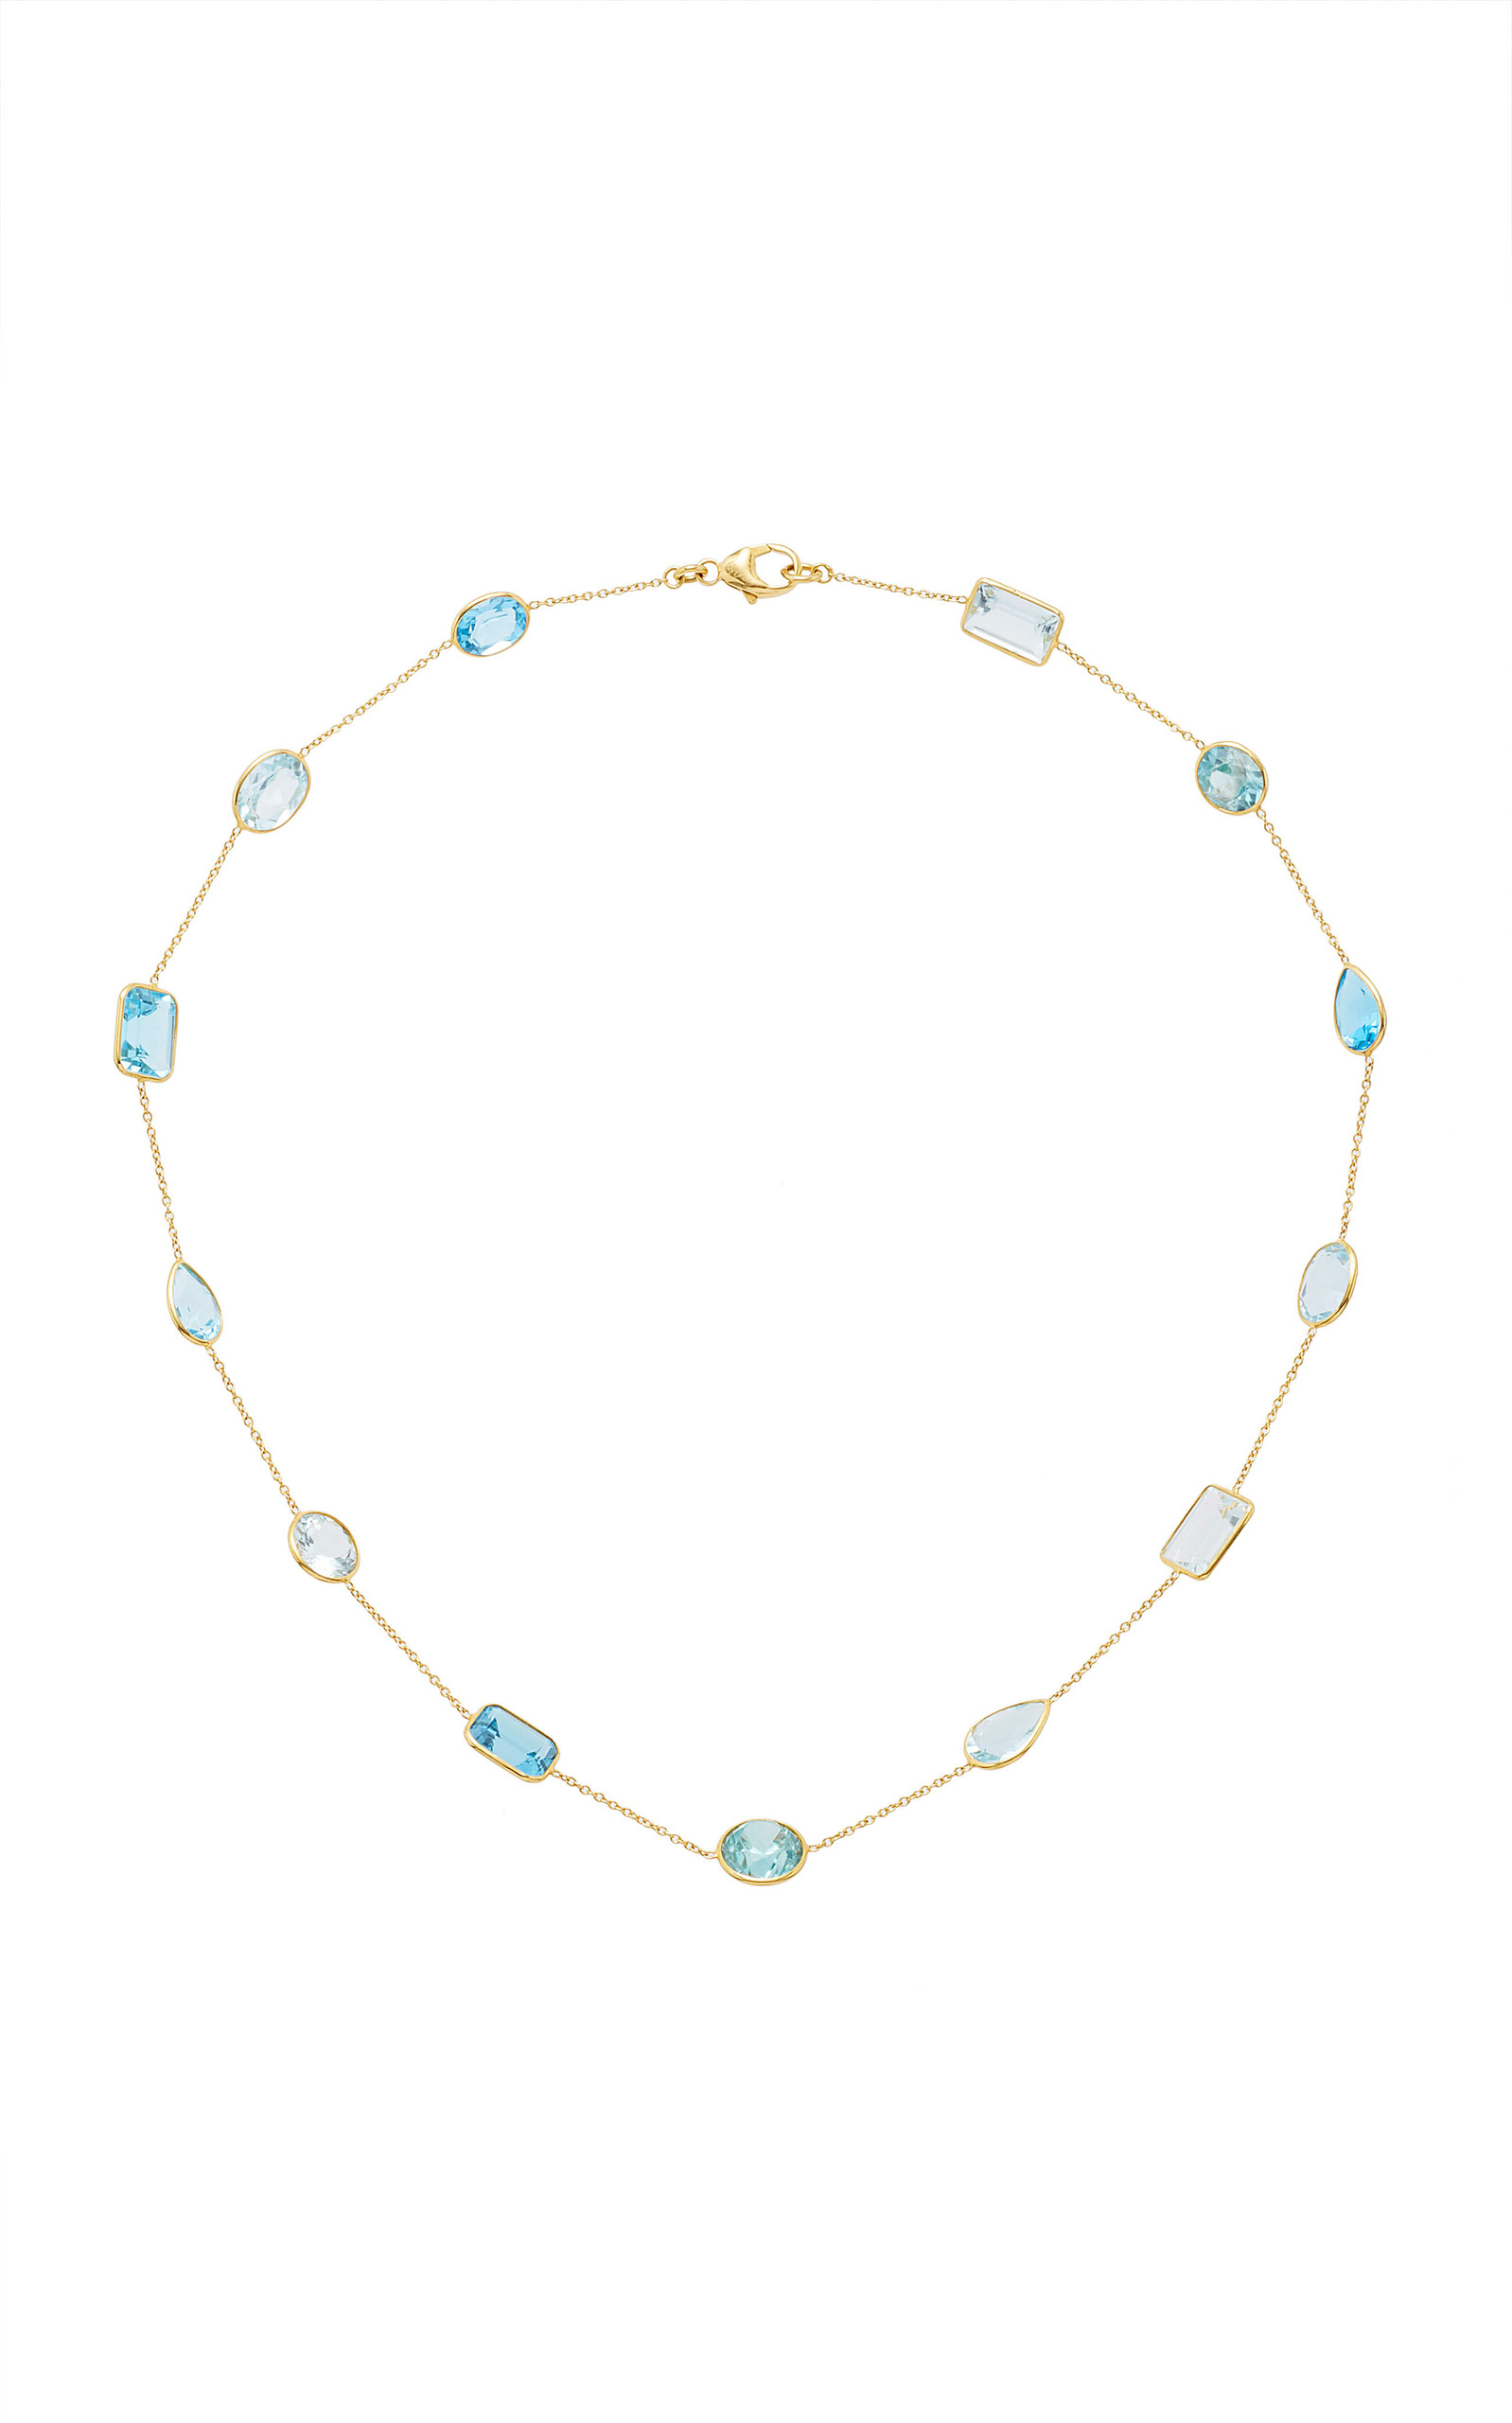 swarovski bermuda gold anklet blue cystal bride something for p aquamarine ankle filled bracelet bridal crystal